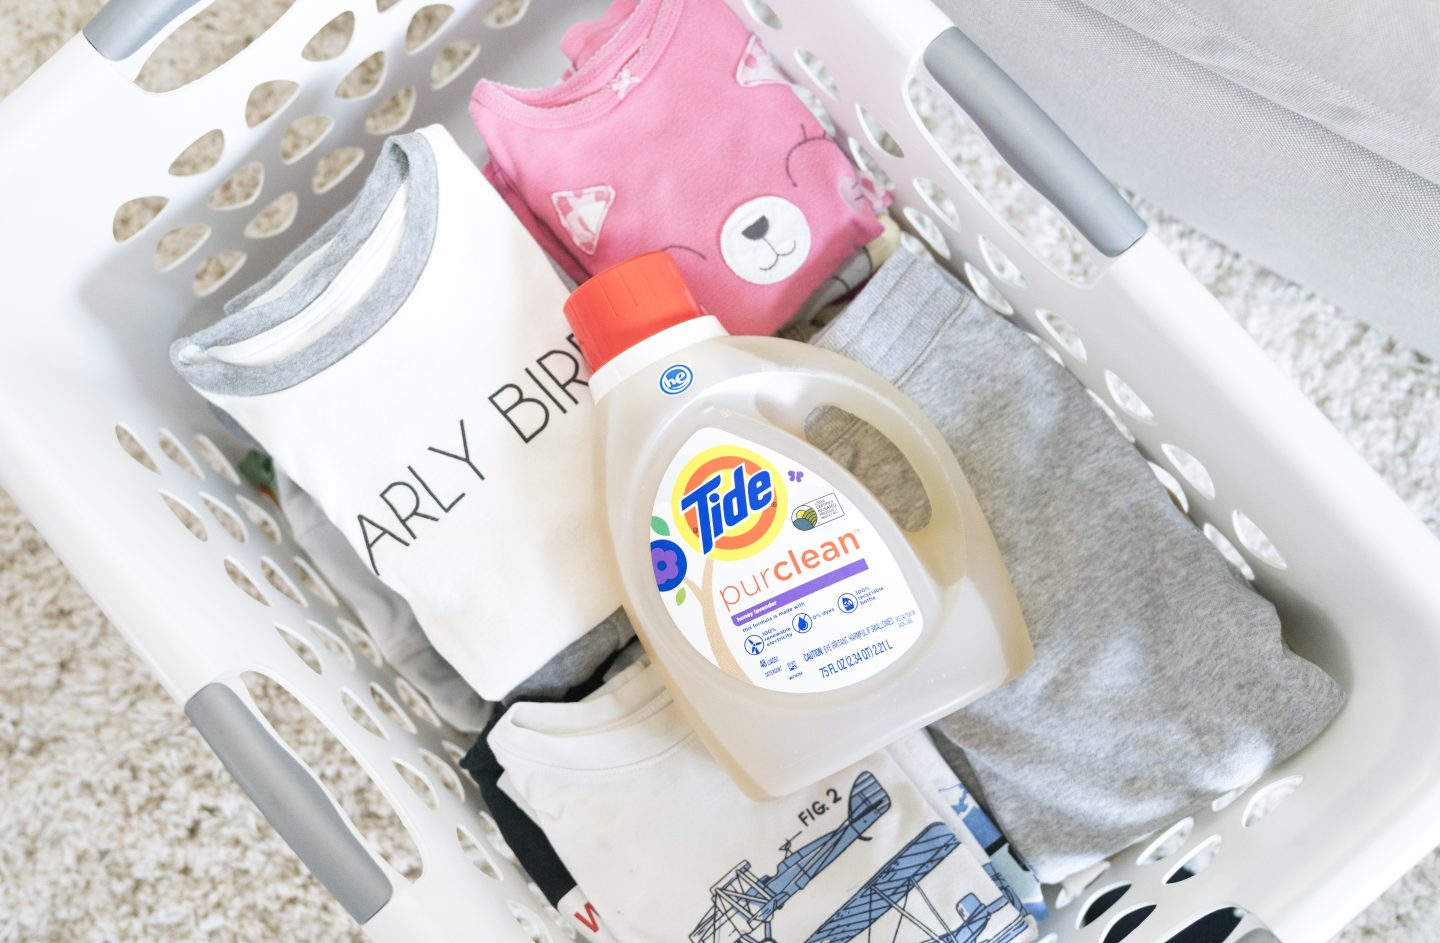 Tide purclean Honey and lavender